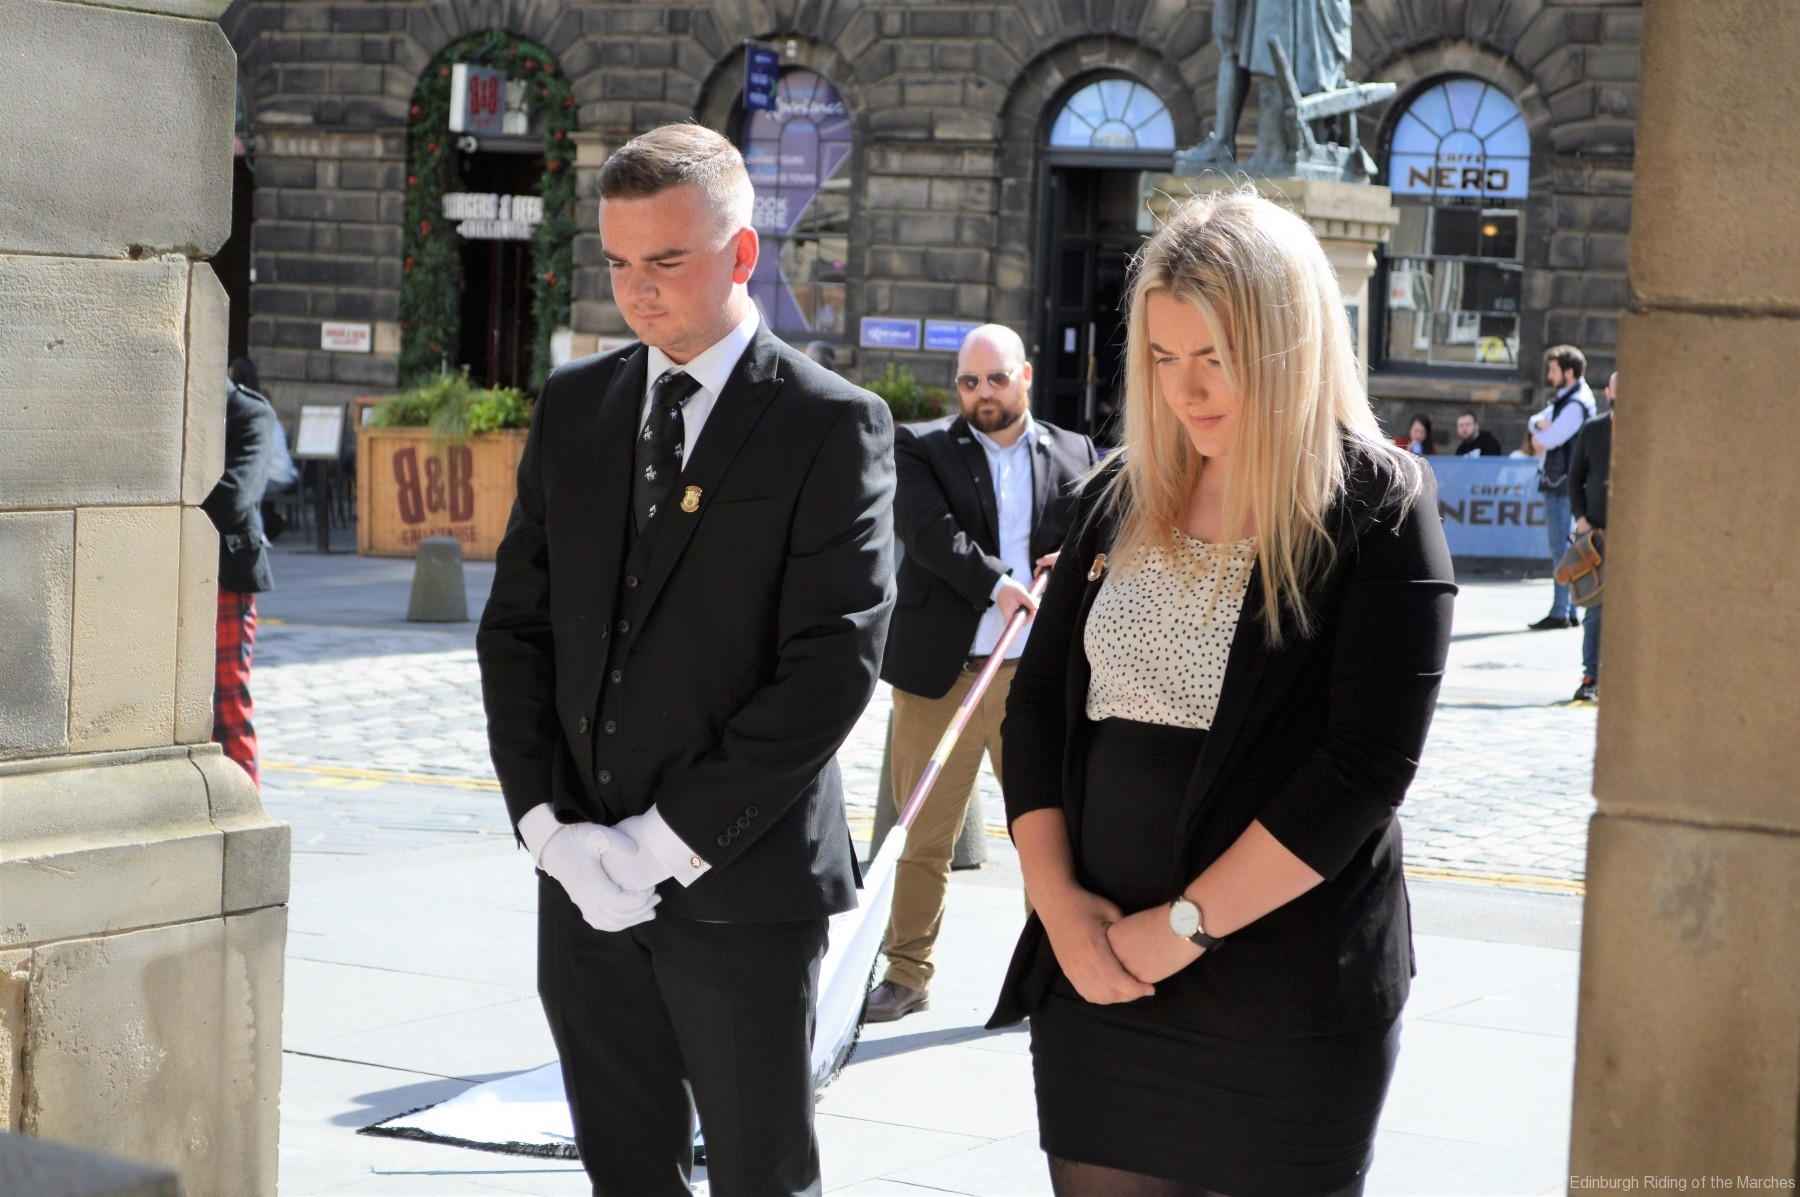 2021 Captain and Lass Elect, Jay Sturgeon and Abbie McDowall lay a wreath at the City Chambers War Memorial